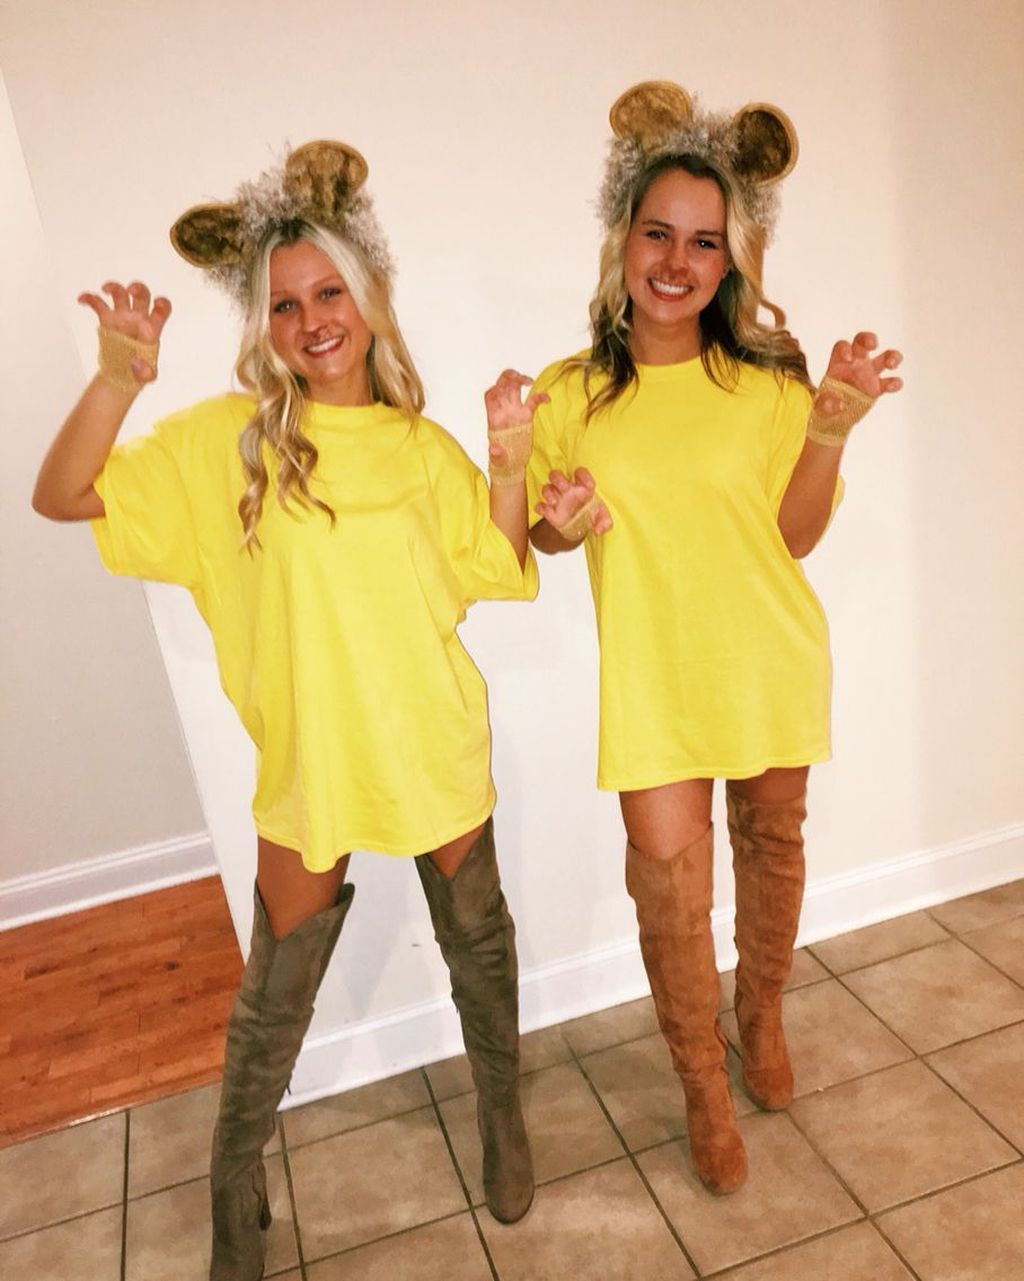 20+ Hottest College Halloween Costumes For A Party in 2020